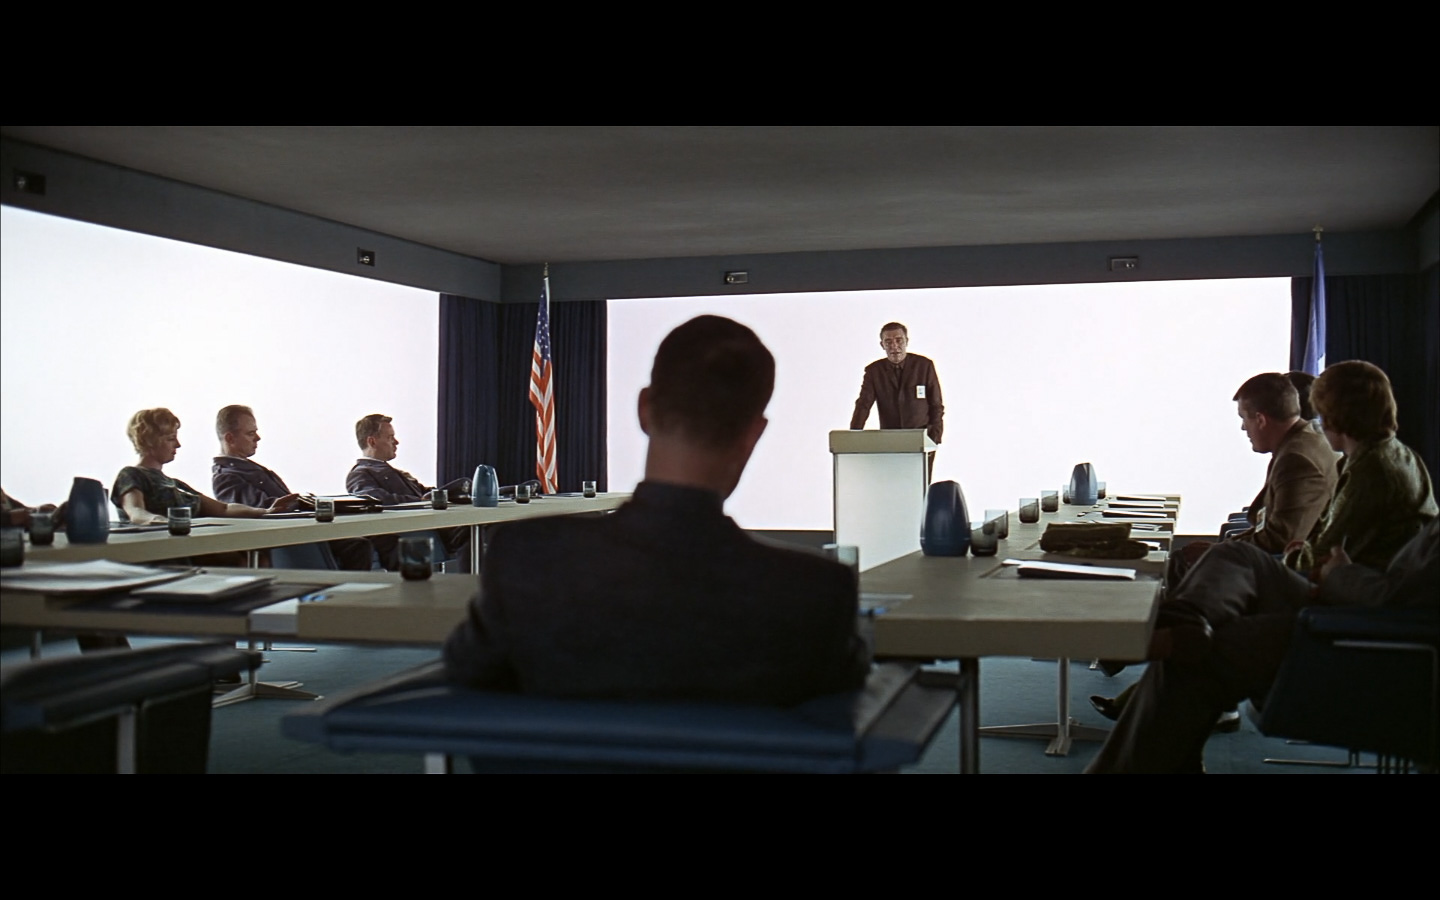 space odyssey - camera work - war room-4